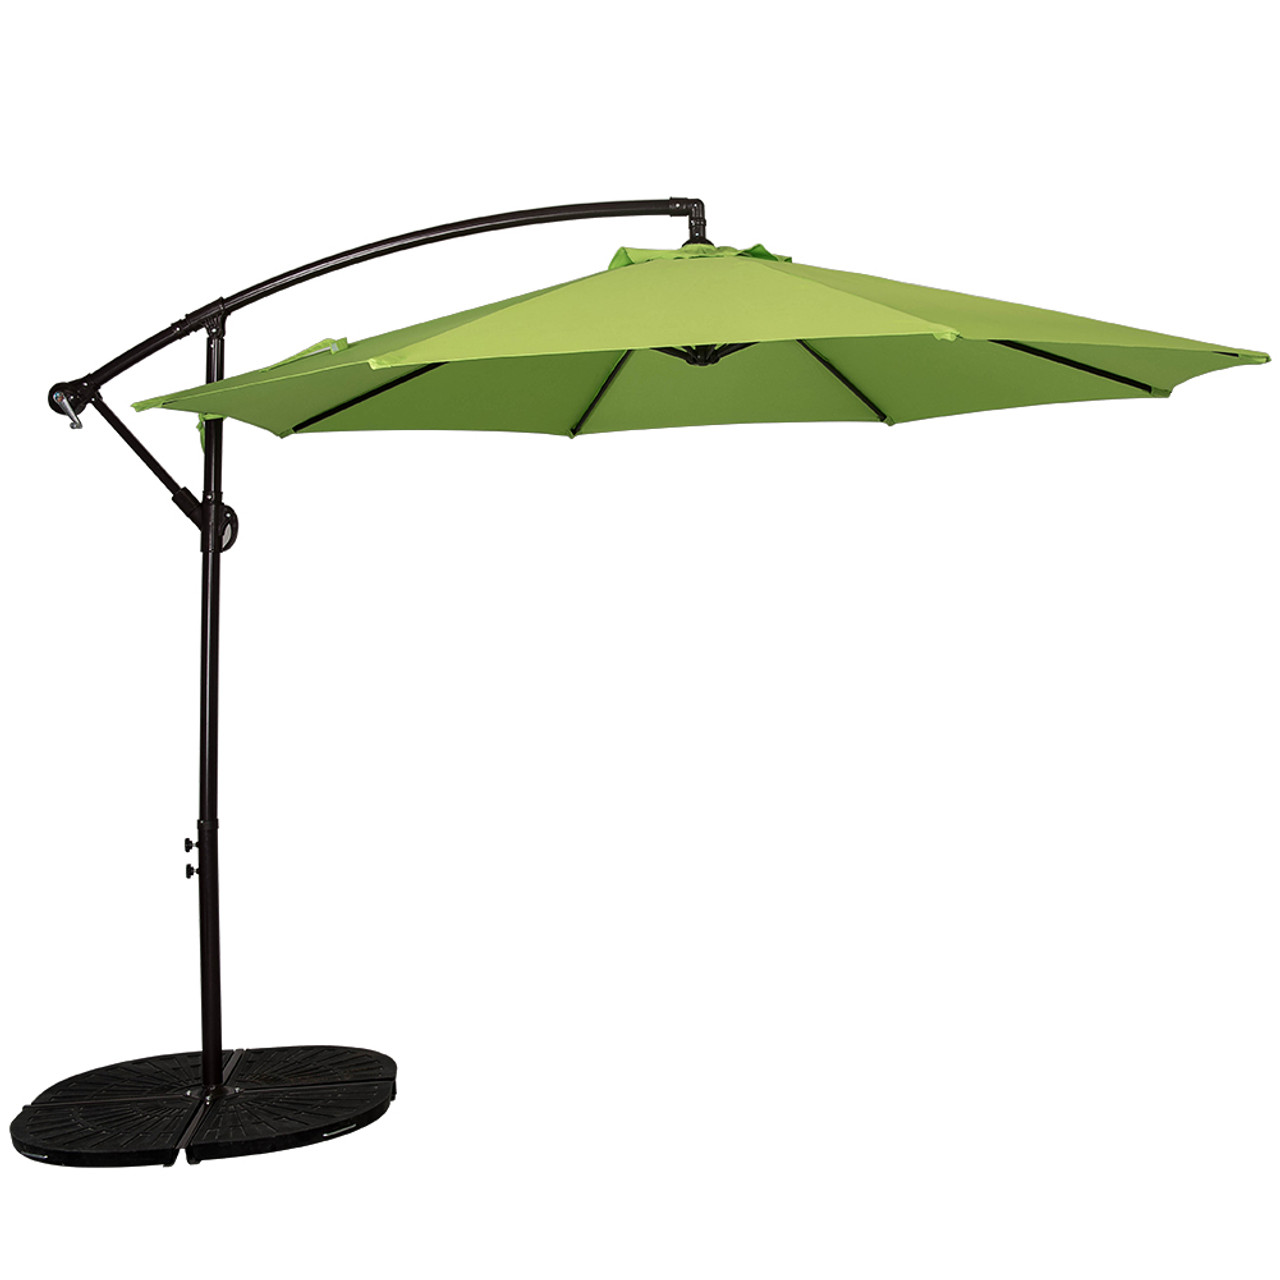 patio modern umbrellas planning offset on wind spectacular ideas home attractive design in resistant with umbrella gallery decorating